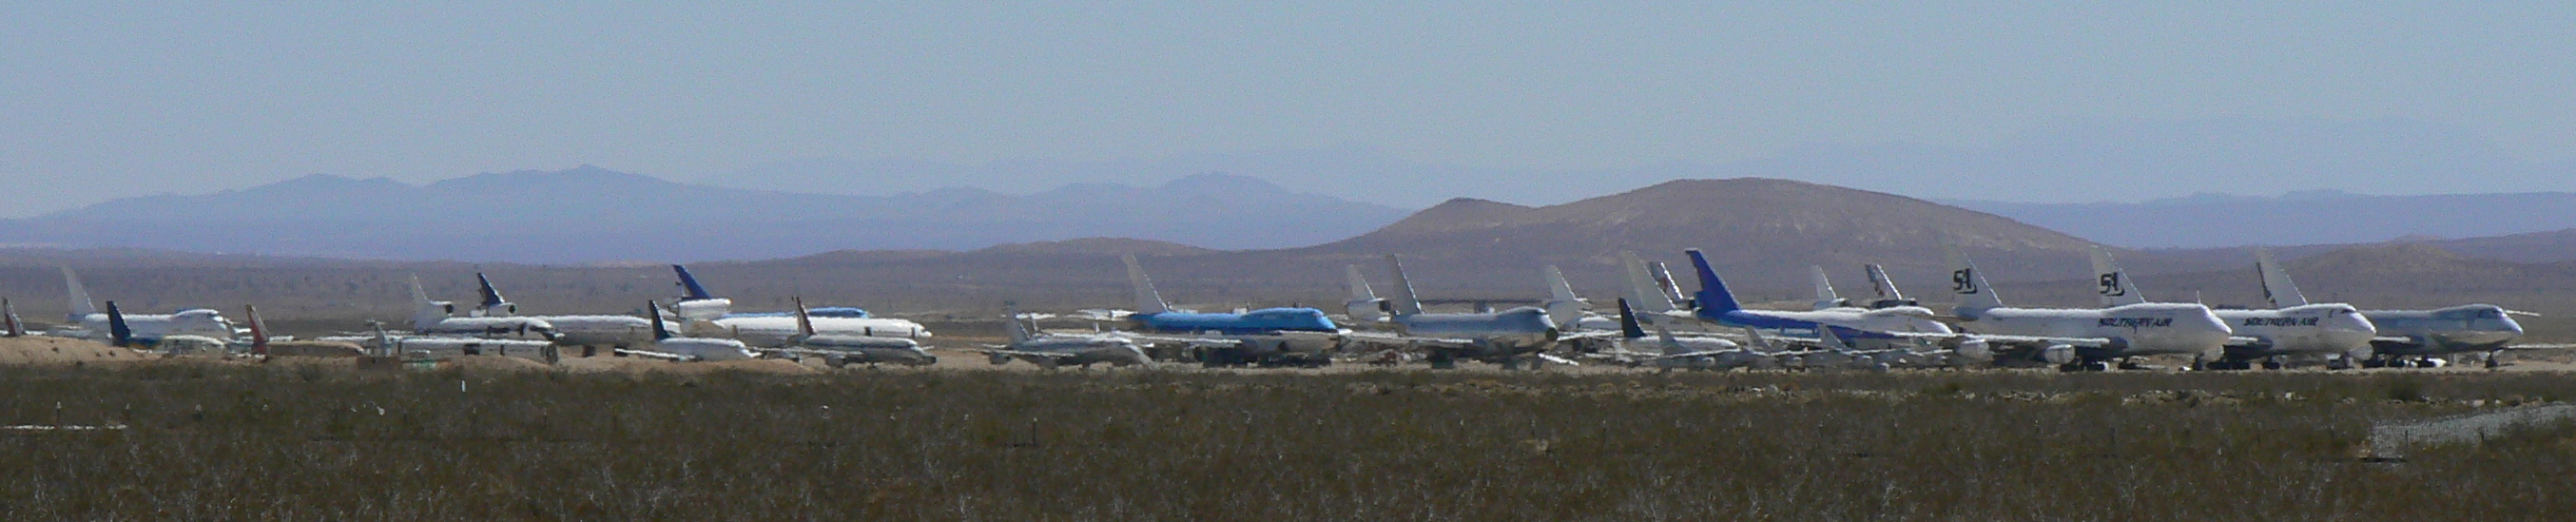 Mojave mothballed 9-23-2009